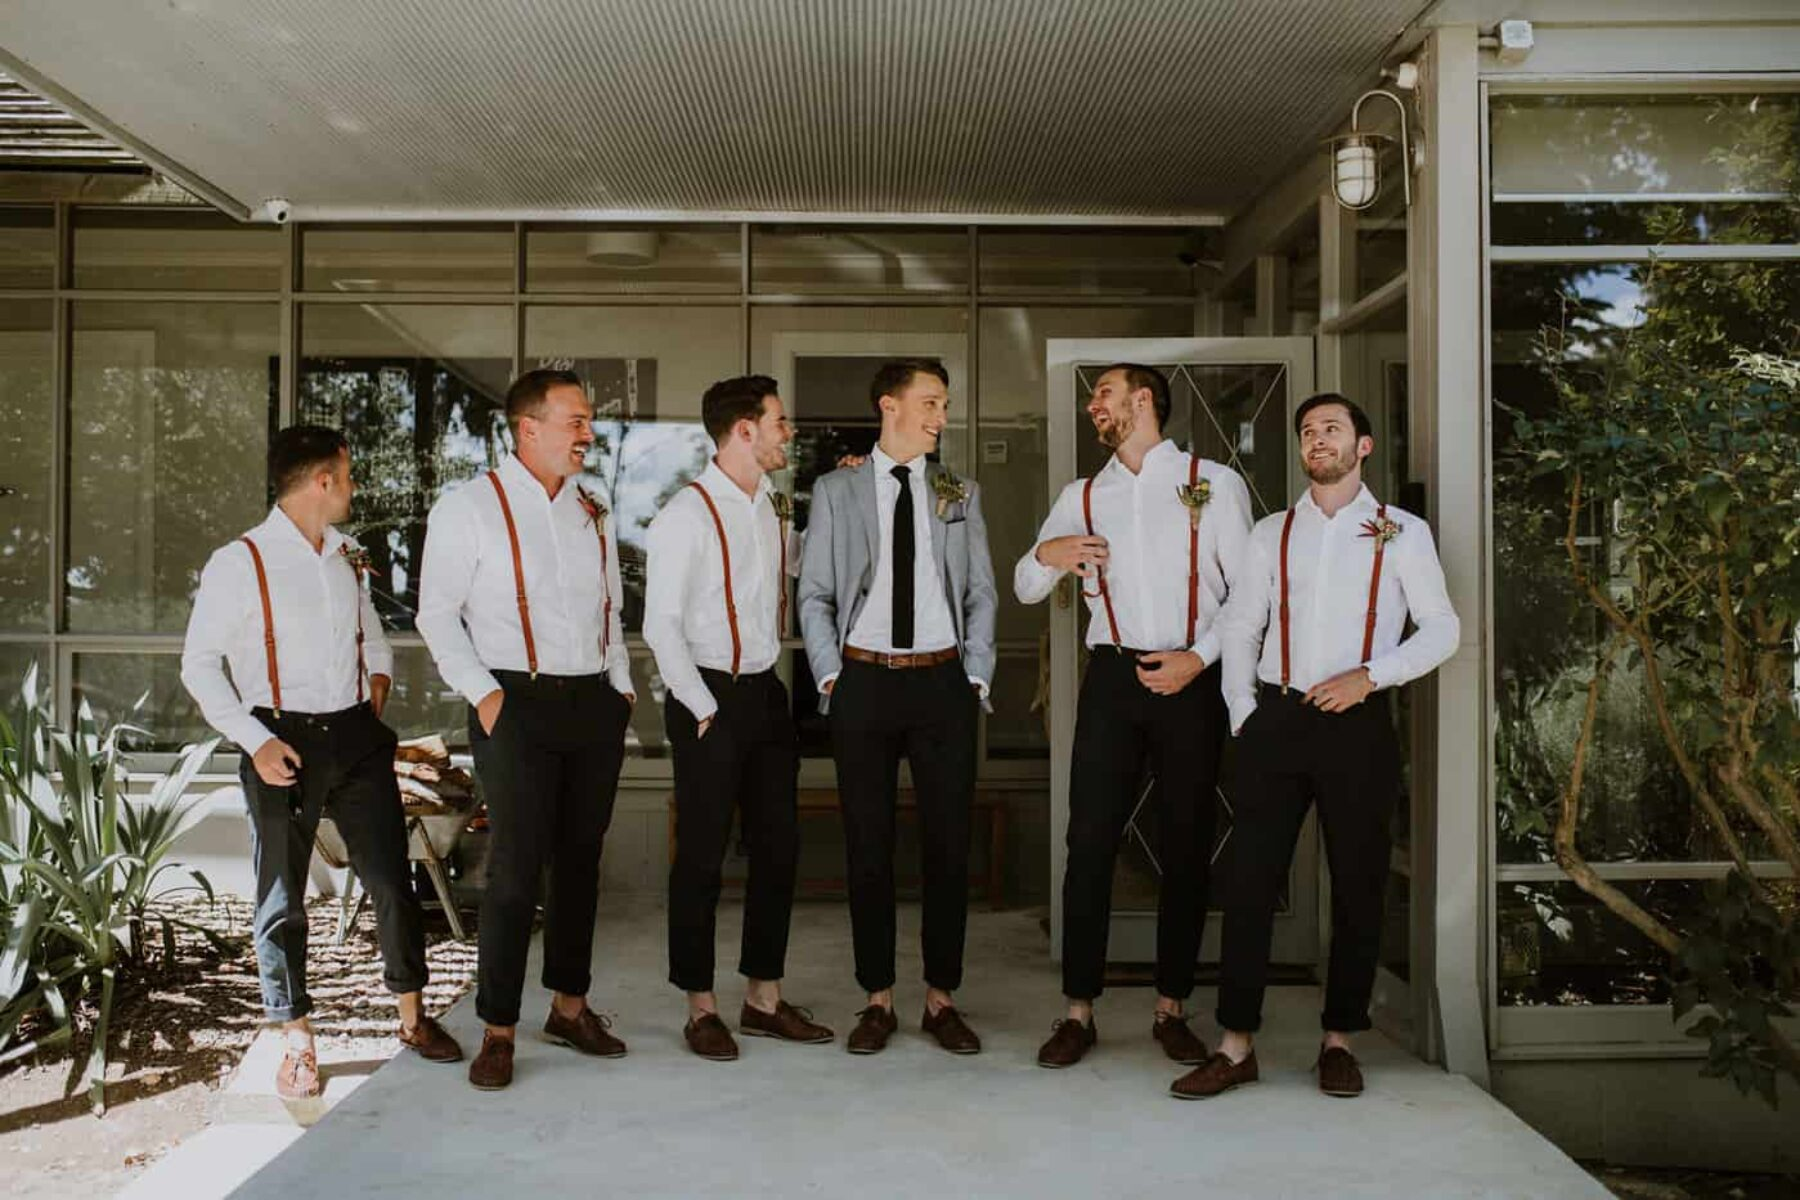 dapper groom and casual groomsmen in braces